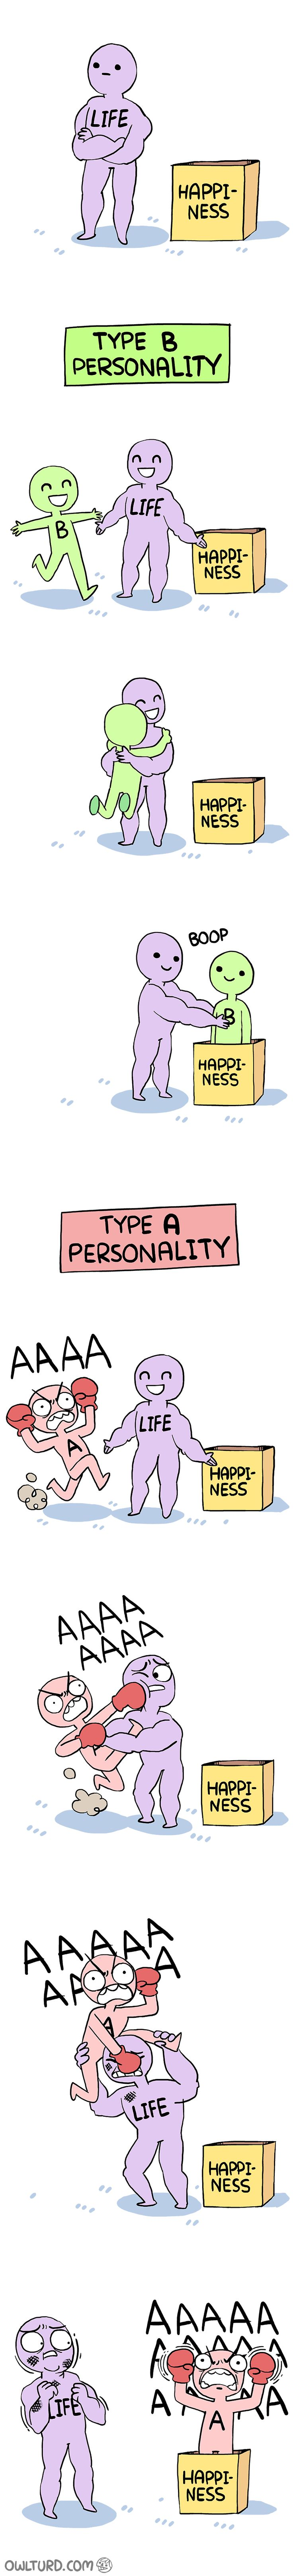 type a vs type b personality essay  type a vs type b personality essay